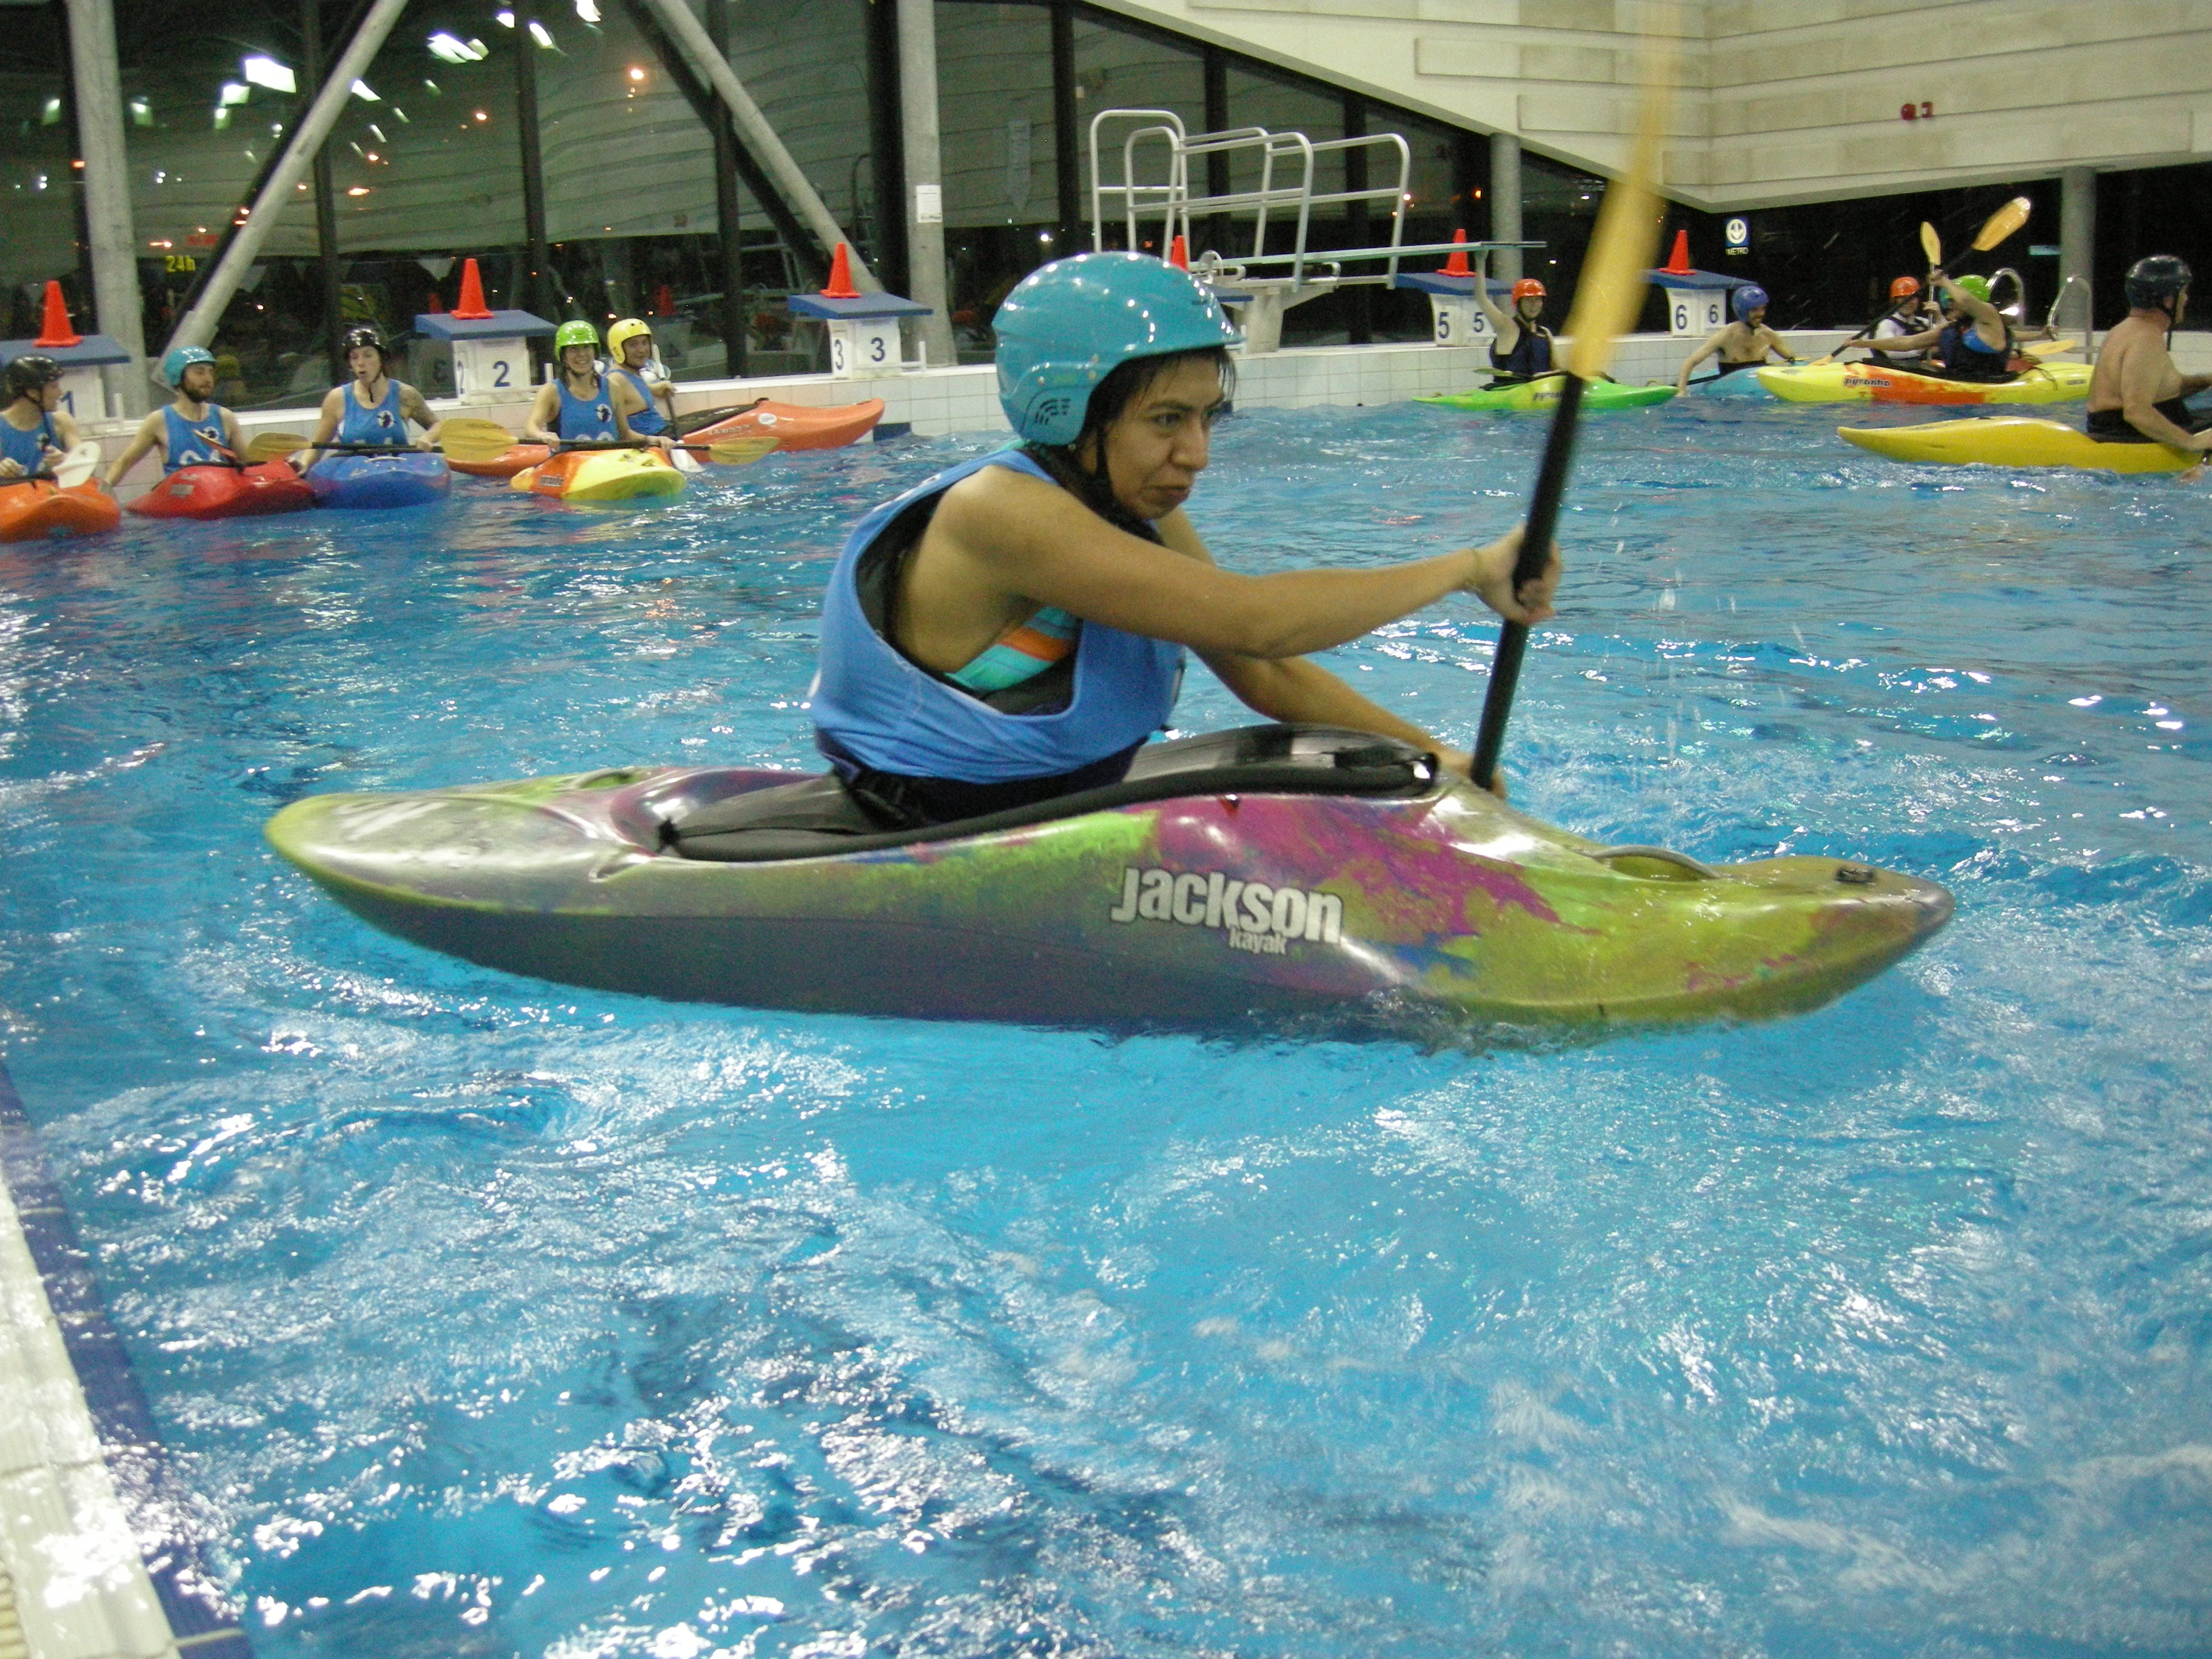 Introduction to kayaking in a pool - April 14th